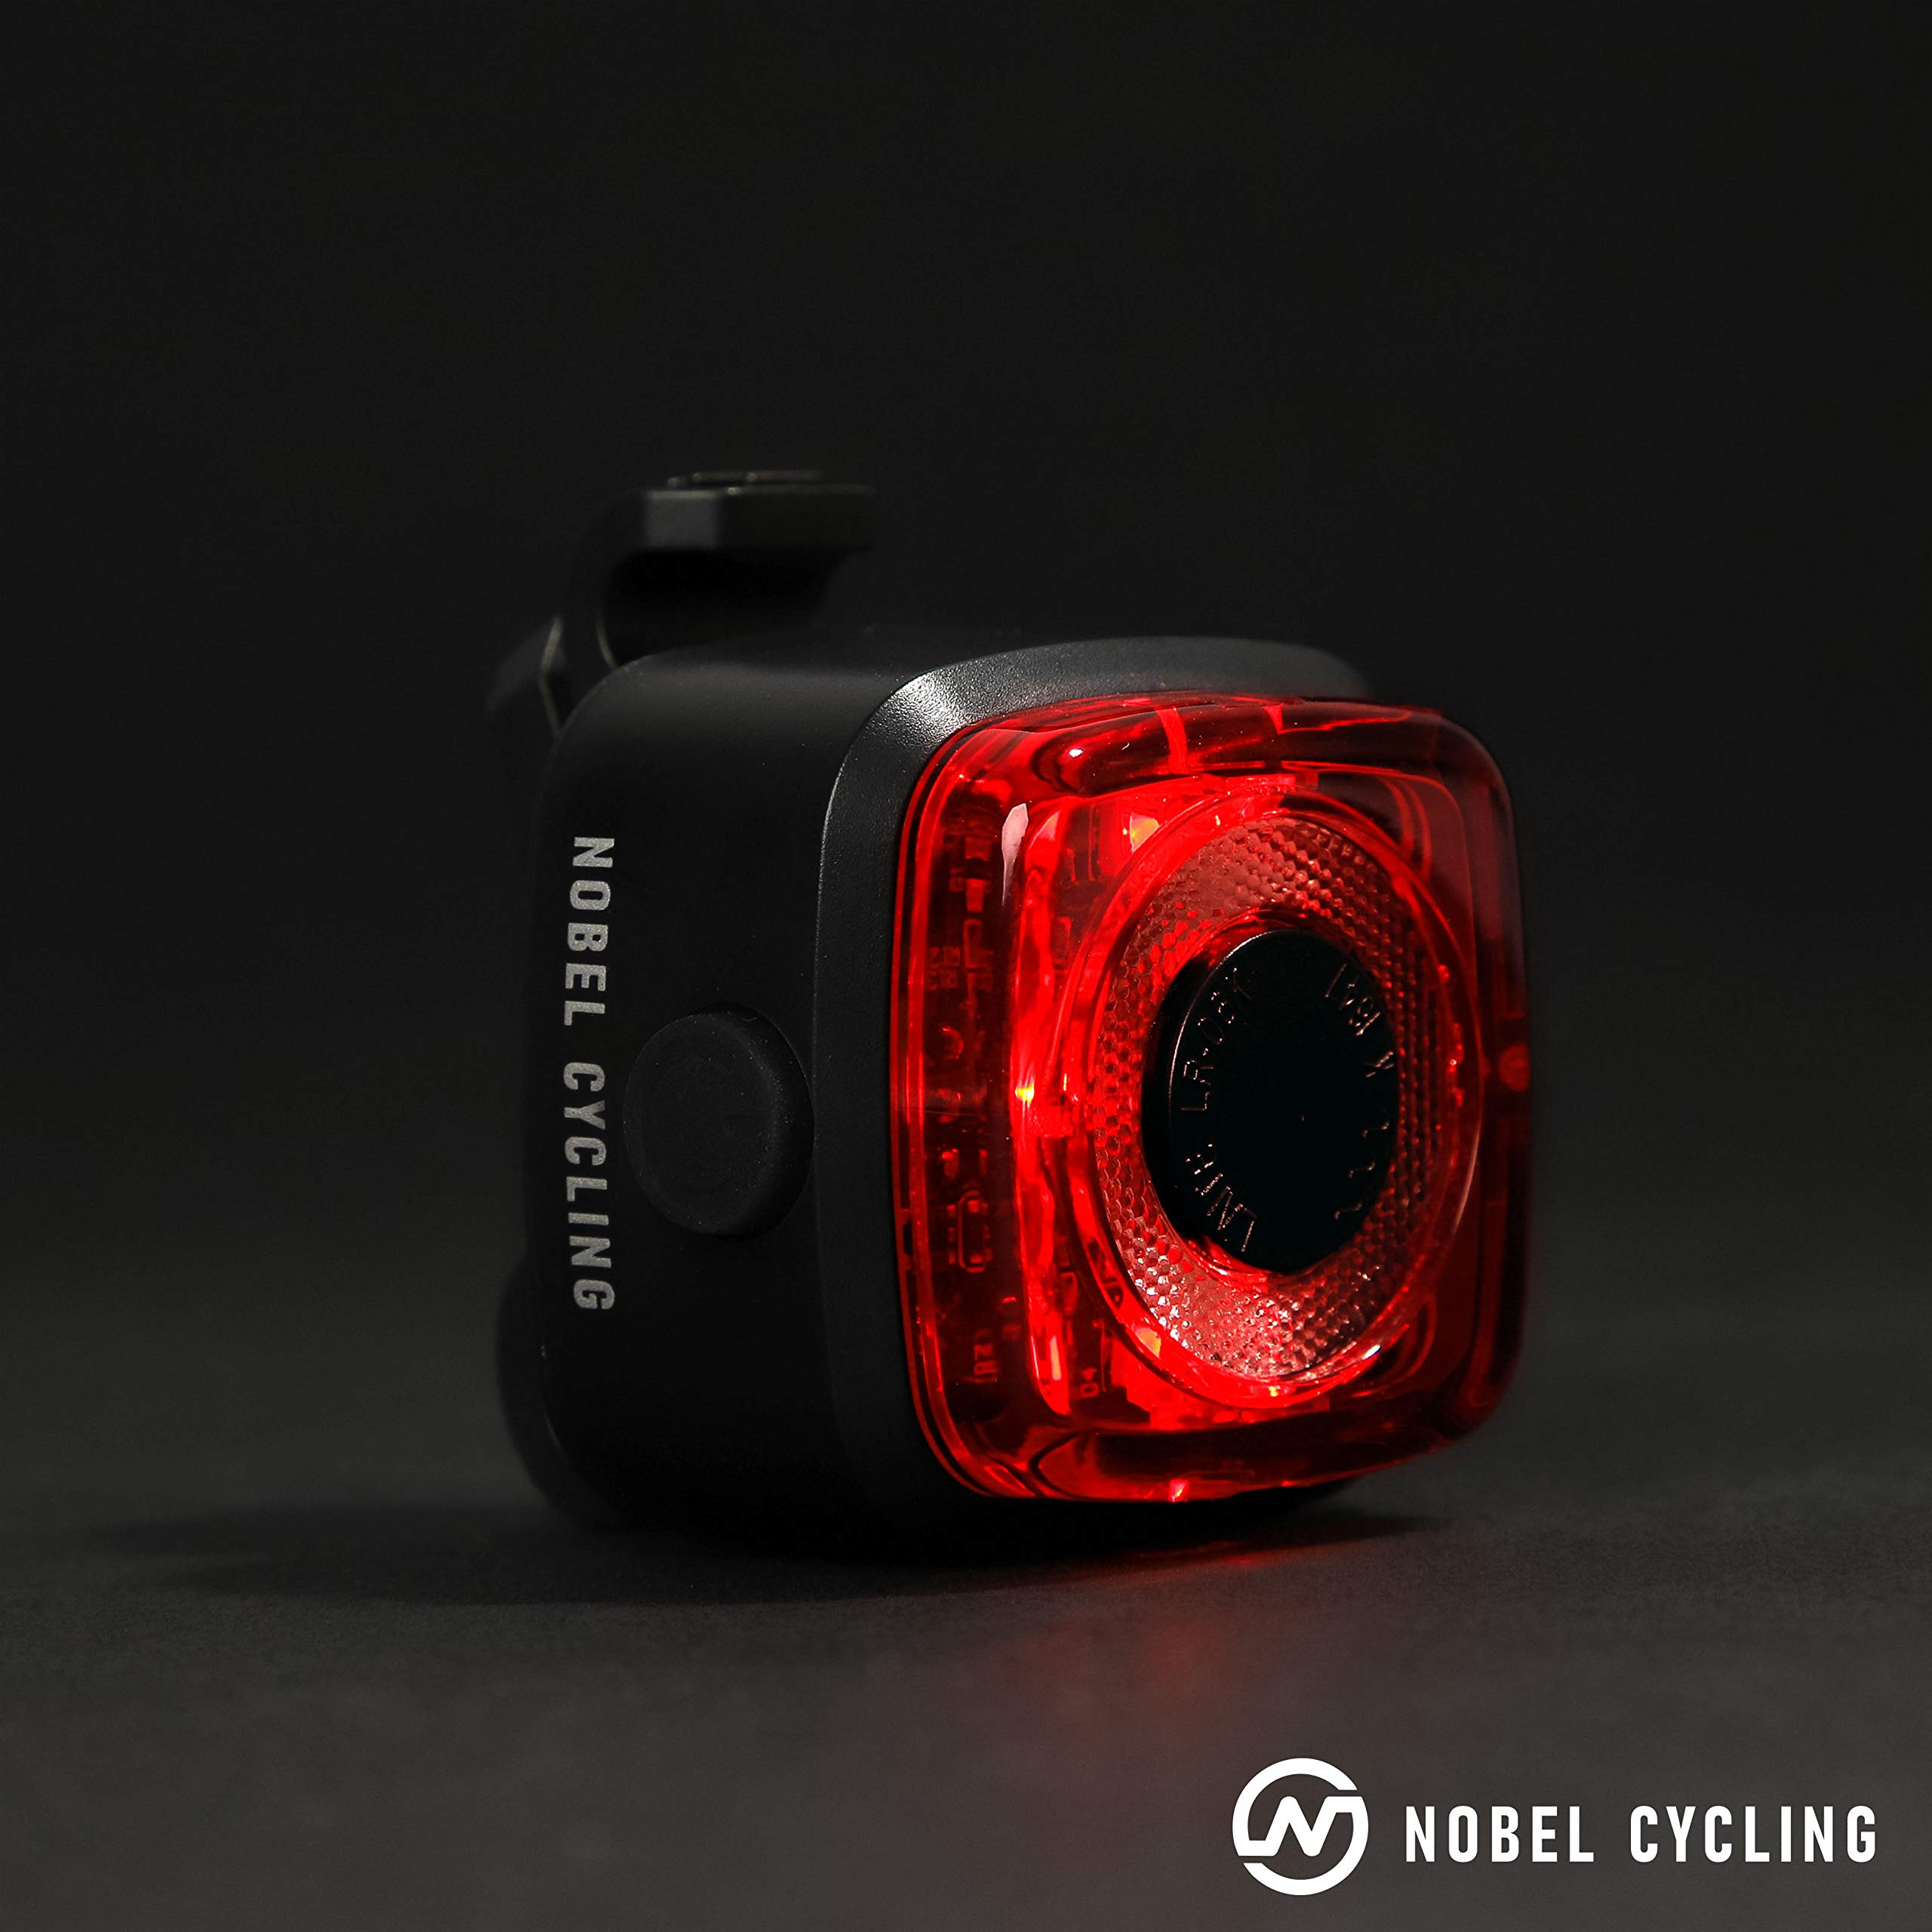 They Provide Brilliant Xtreme Bright Ultra Torch LED Bike Light Set; Powerful Long-Lasting Illumination for Maximum Security and Safety Durable 250 Lumen Combination LED Cycling Accessories Include Headlight and Tail Lights 2 FREE Rear Lights